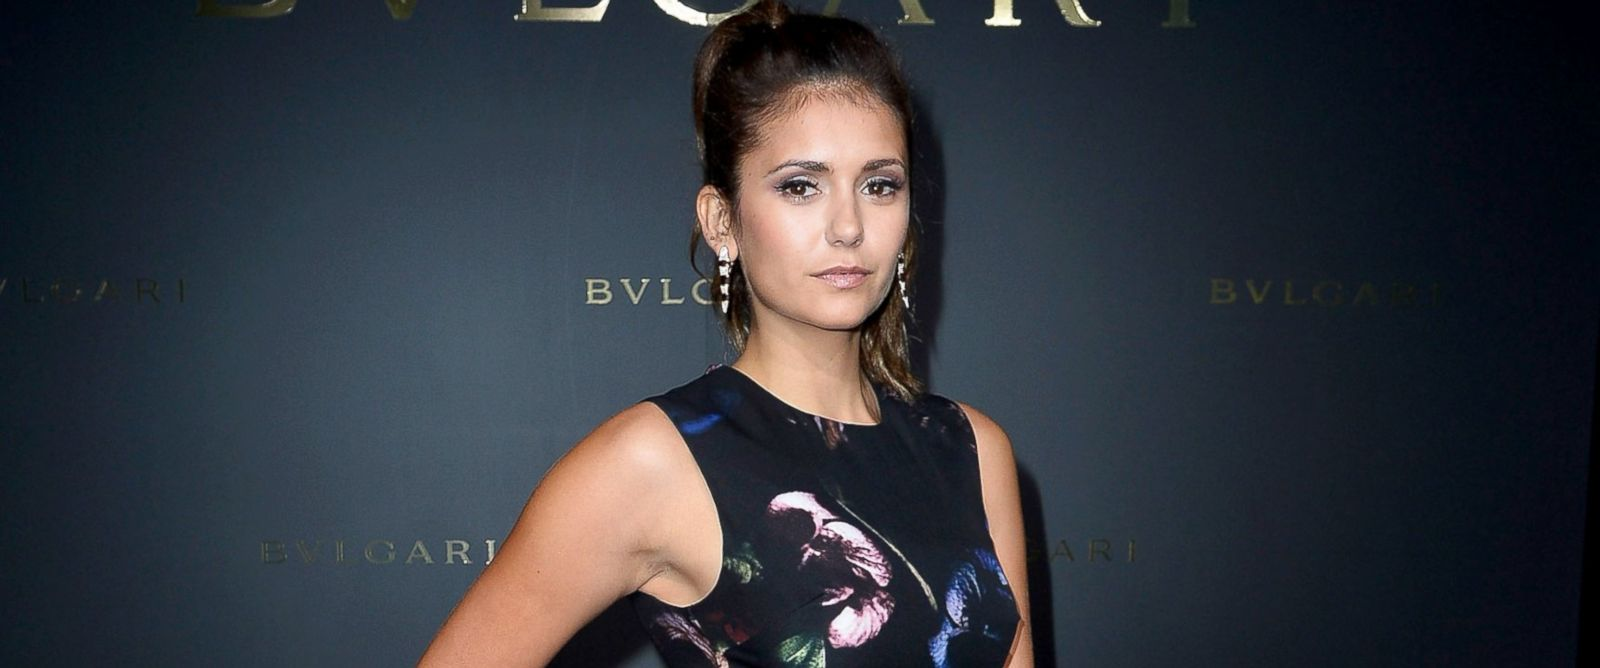 PHOTO: Nina Dobrev attends the Bulgari Cocktail Event At Apicius as part of Paris Fashion Week at Apicius, July 8, 2014, in Paris.